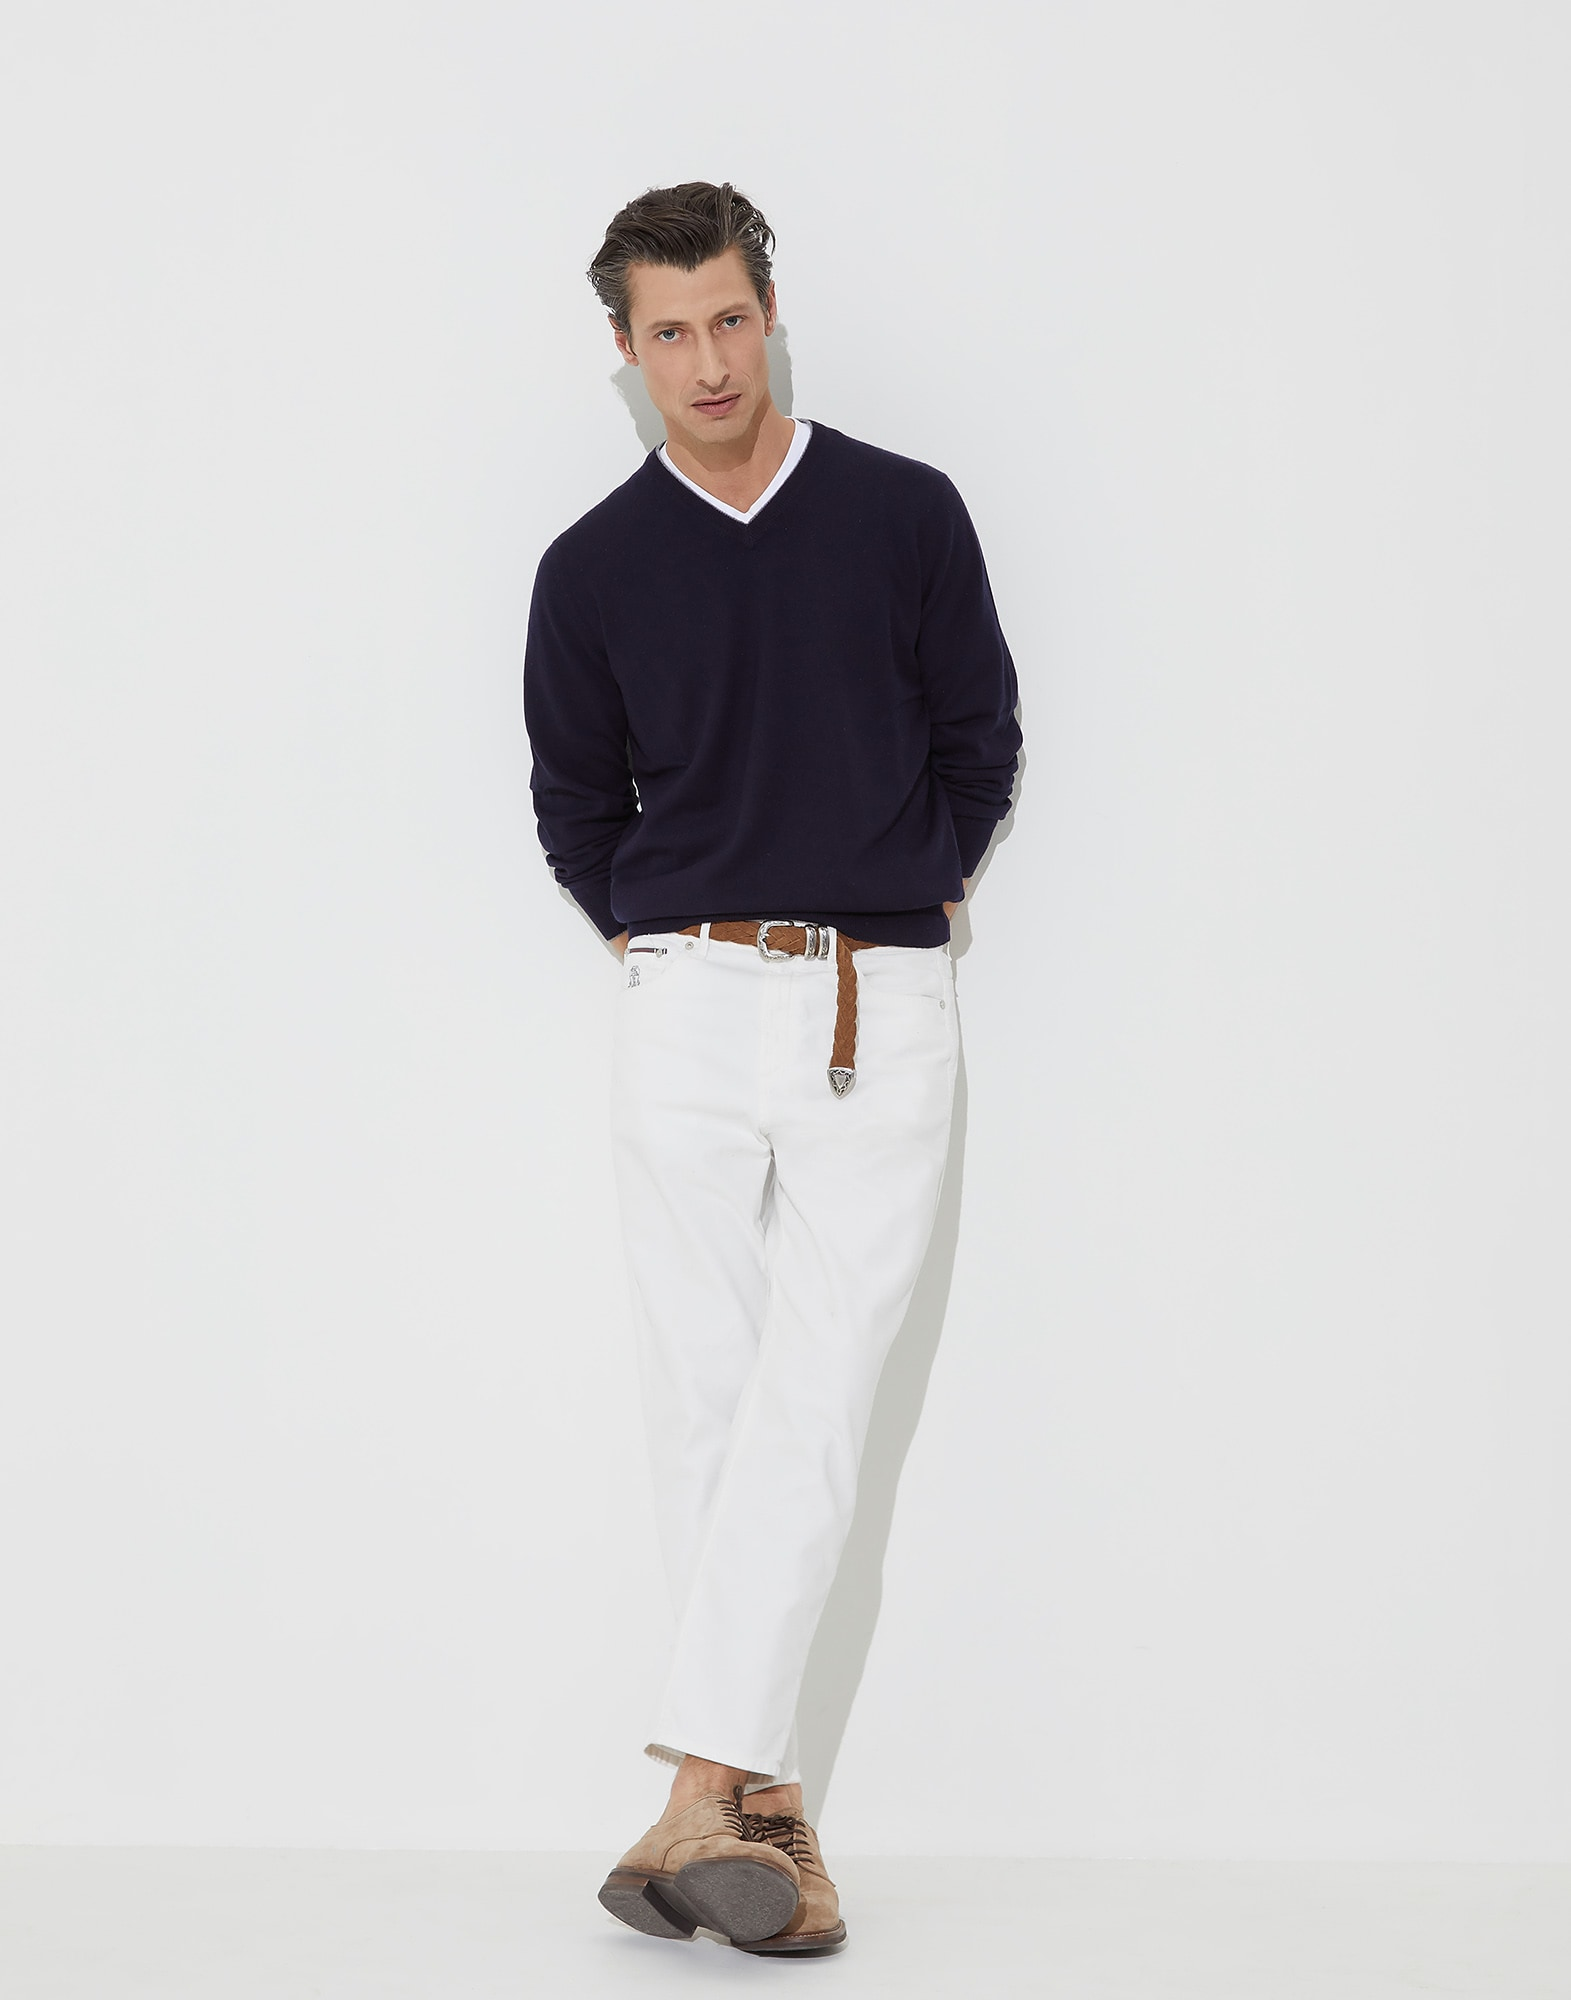 V-neck Sweater - Look